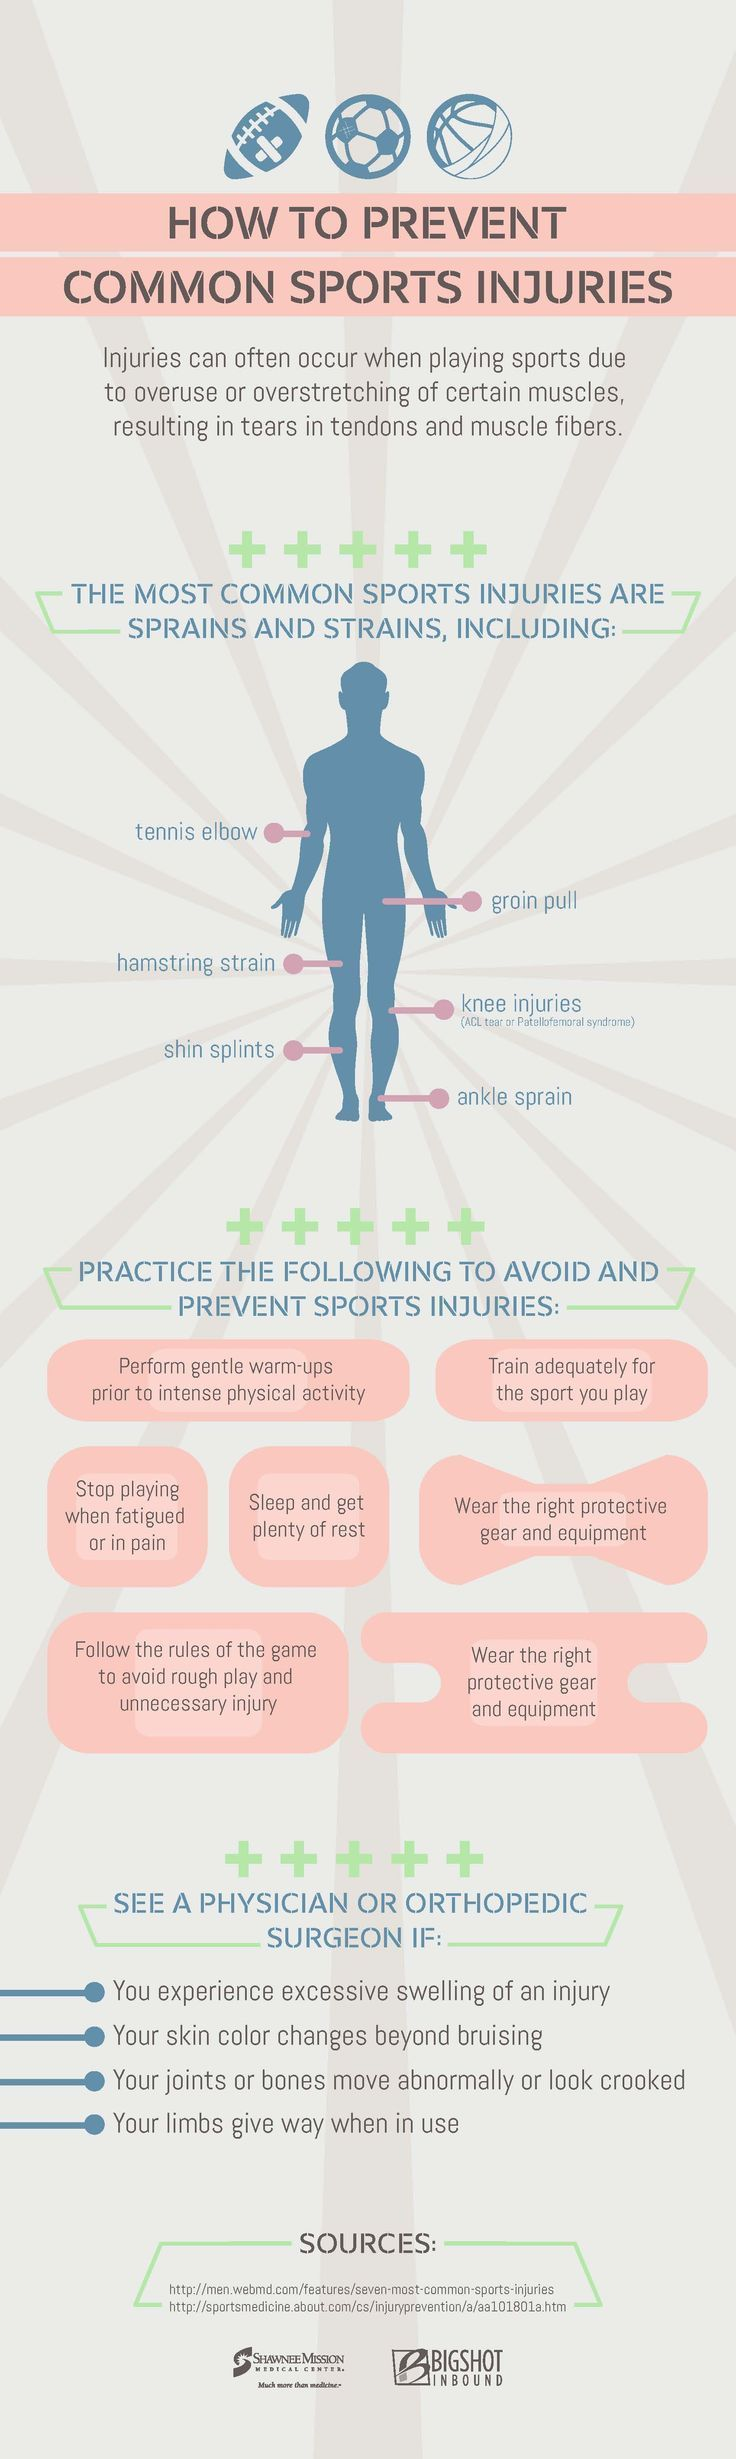 How to prevent common sports injuries sports medicine, healthcare, soccer sports medicine